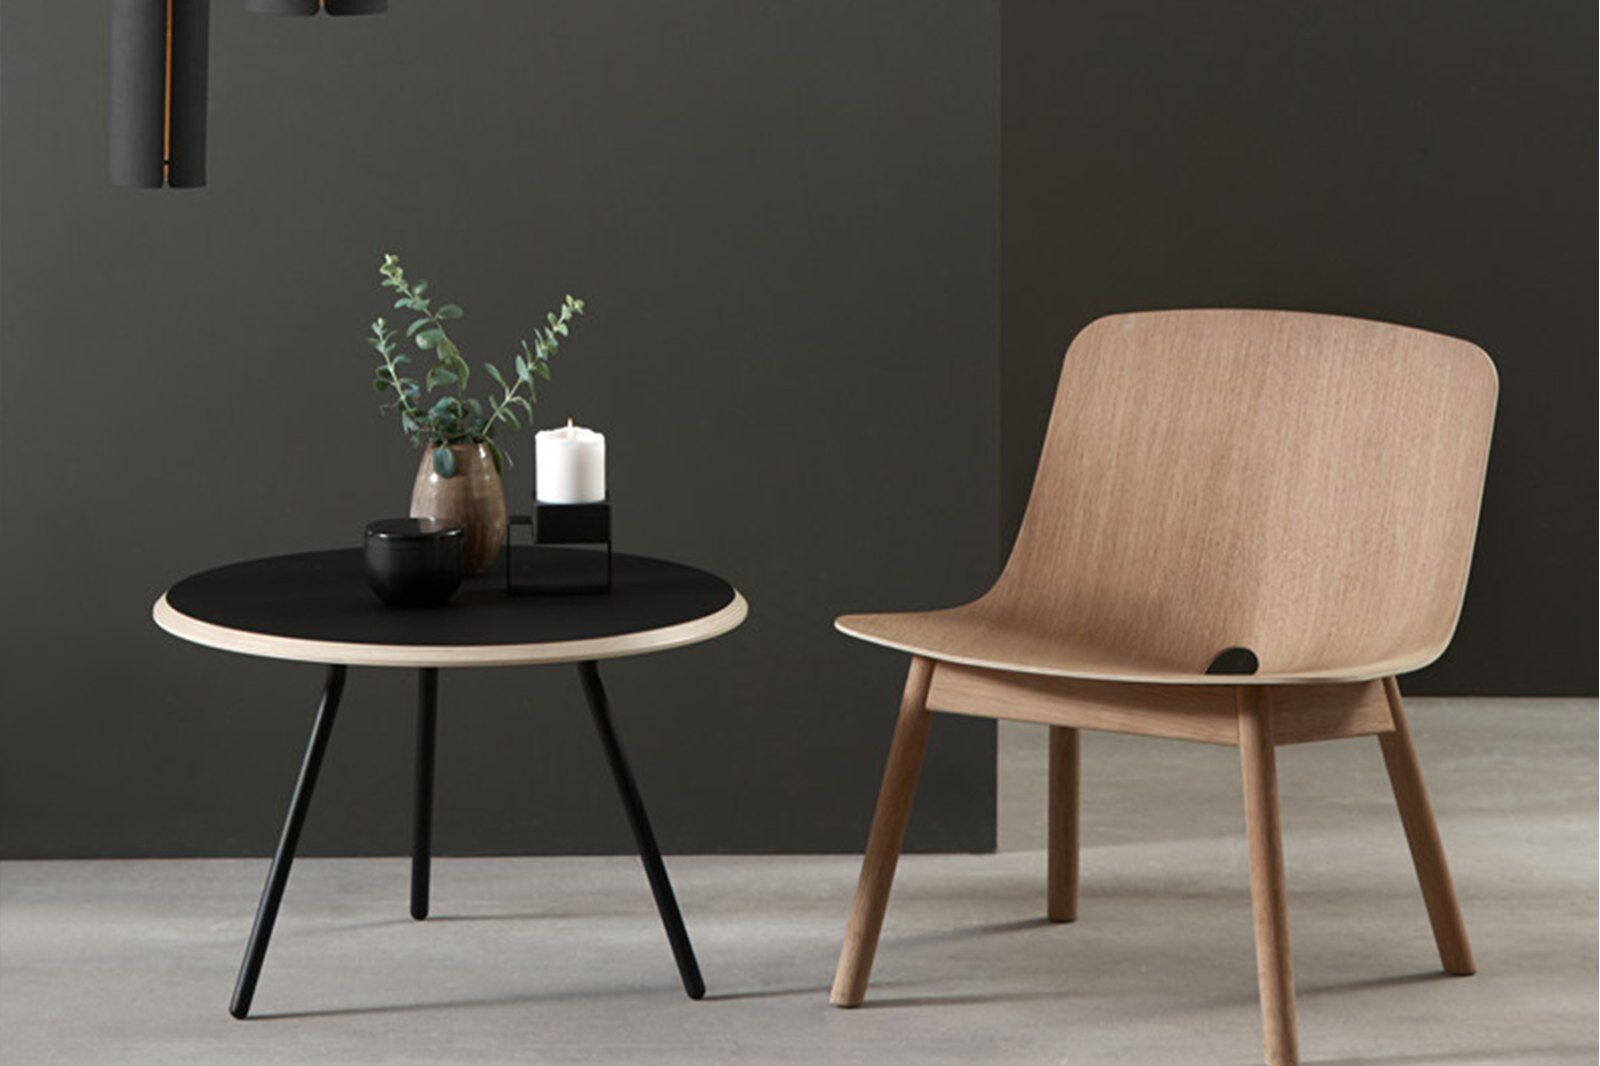 Soround Low Side Table / 1